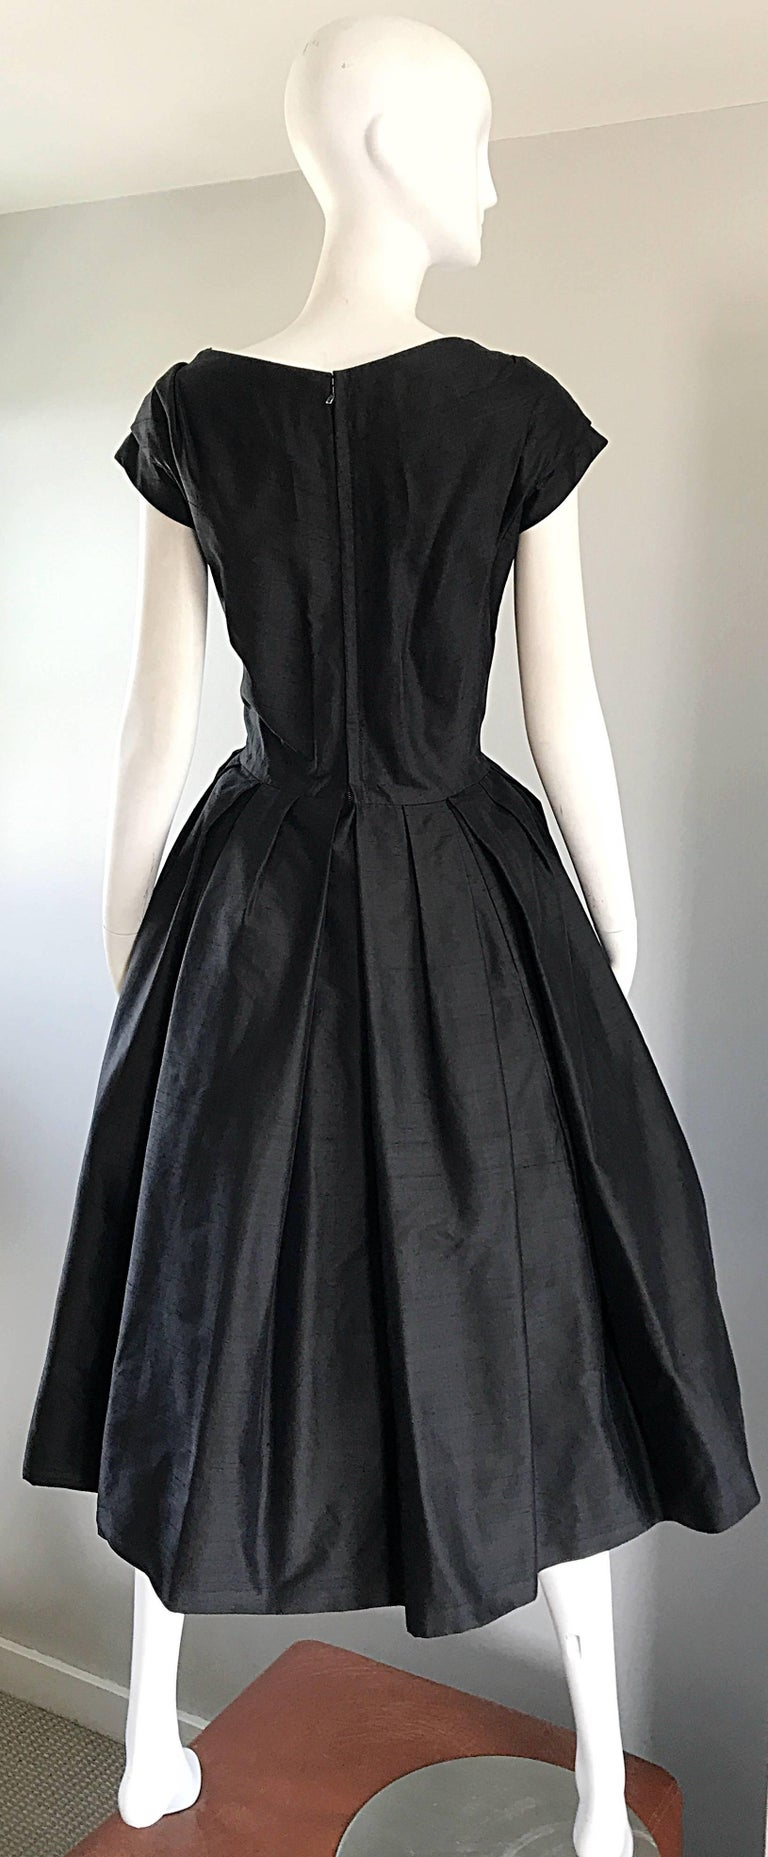 Rare 1950s Christian Dior Haute Couture ' New Look ' Vintage Black Silk Dress 8